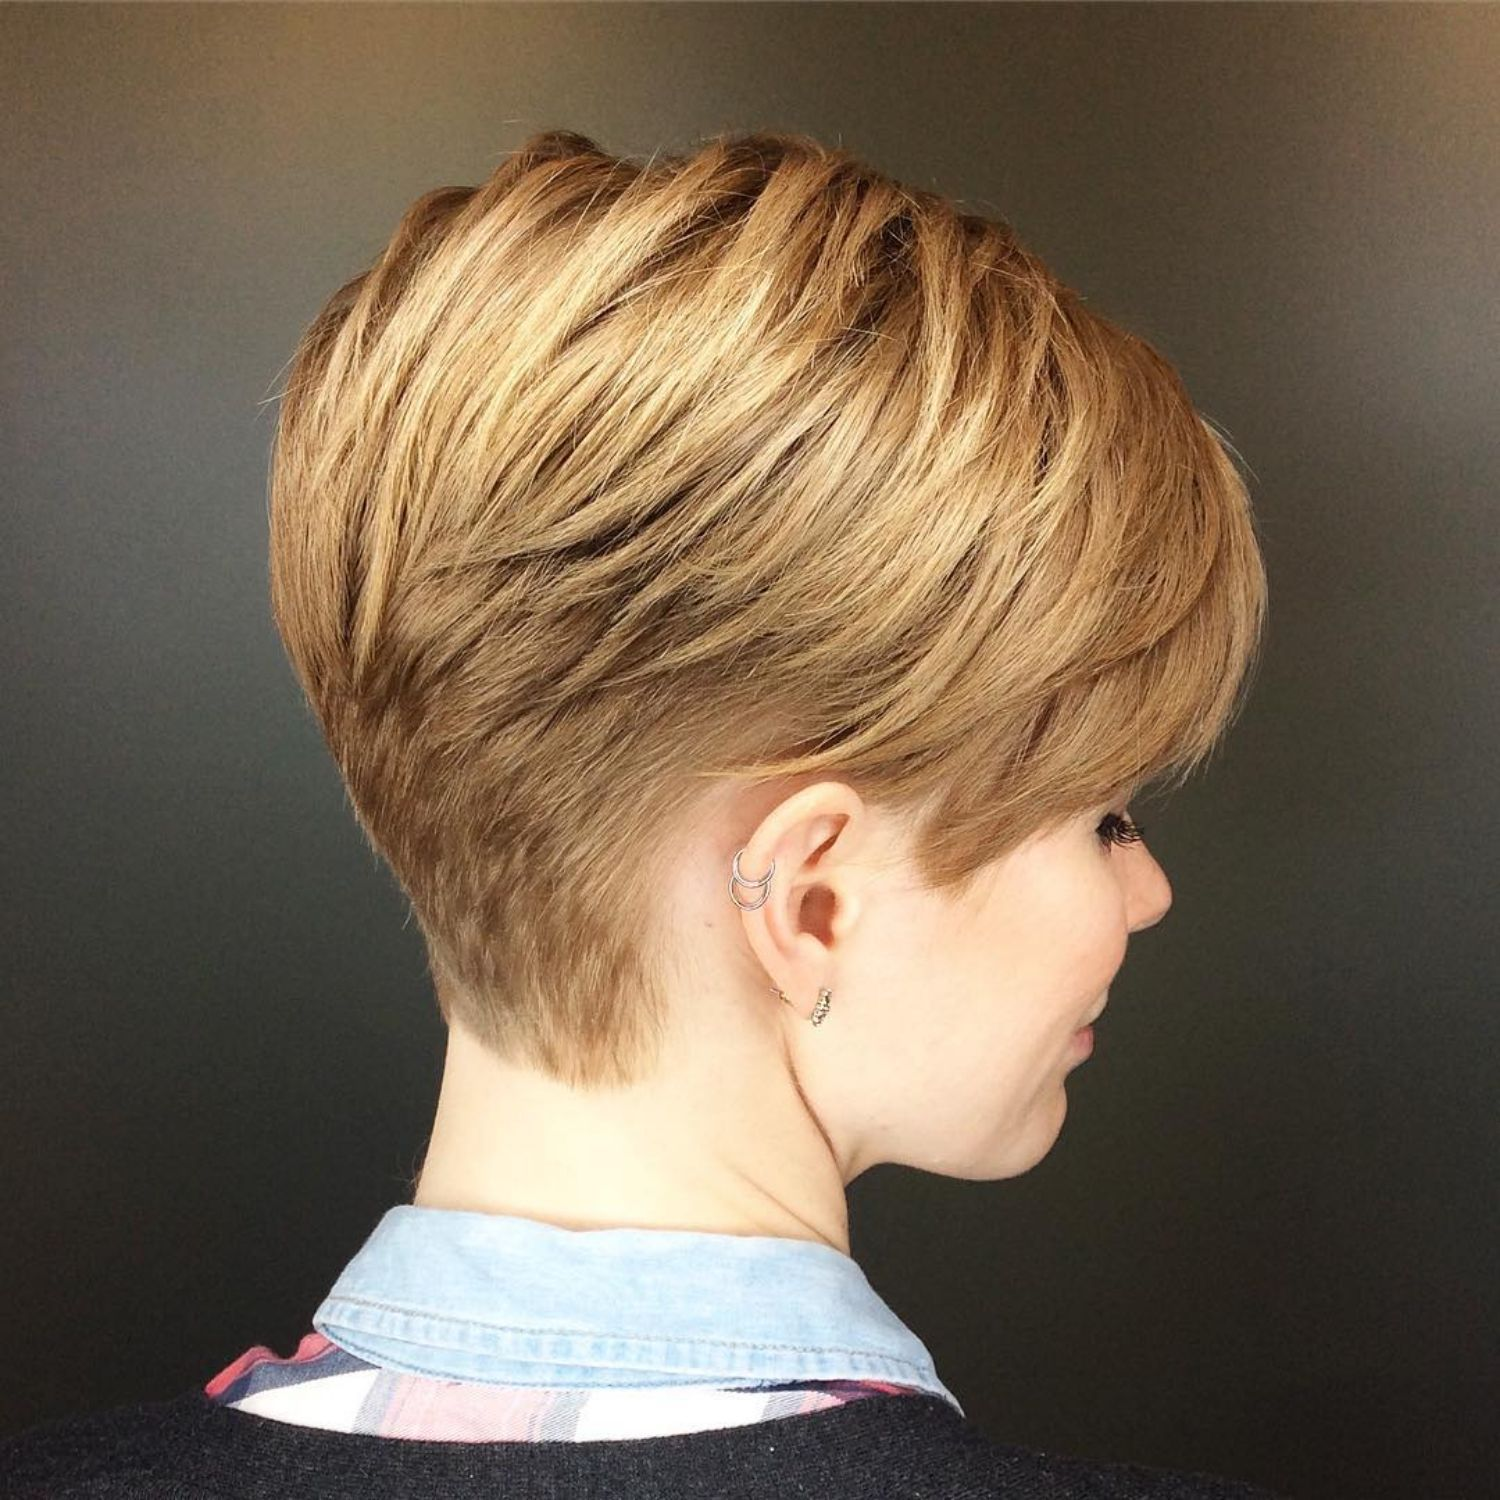 Short haircuts for men with thick hair pixie haircuts for thick hair u  ideas of ideal short haircuts